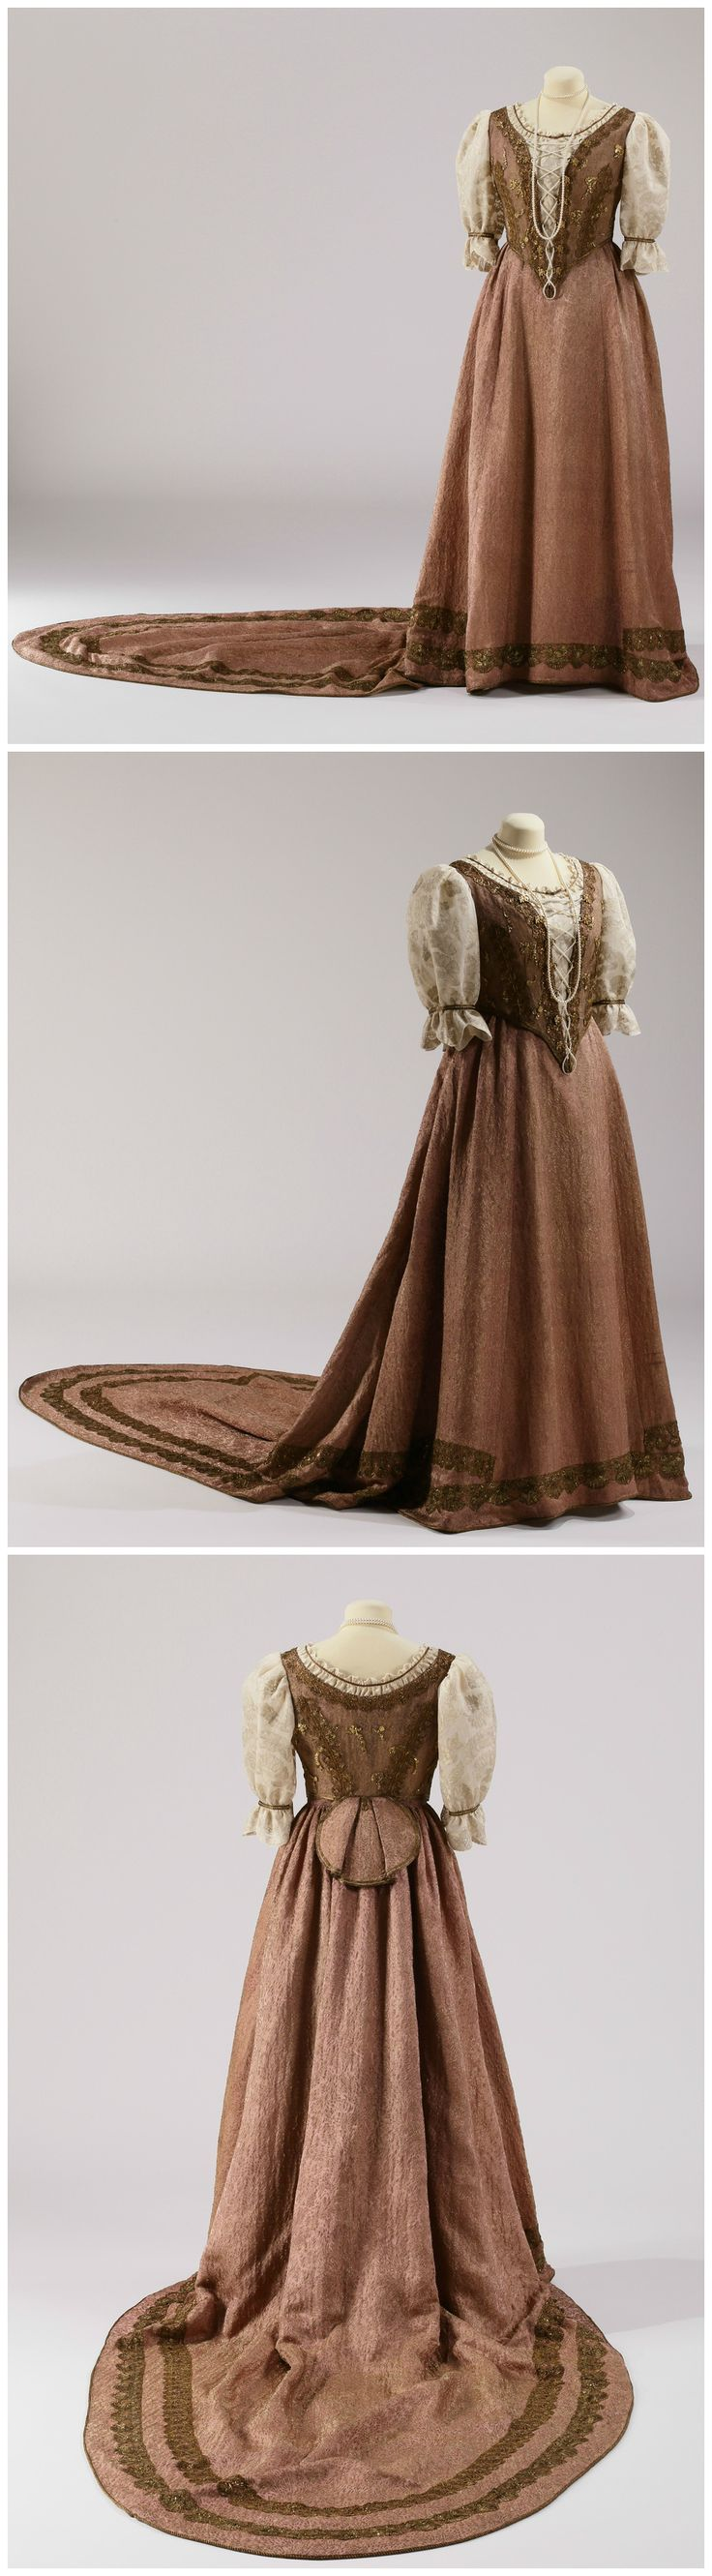 Hungarian court dress, made by the fashion house of József Girardi, Budapest, 1916. Worn by Baroness Ágnes Zeyk, the wife of Count Ádám Teleki, to the coronation of King Charles IV of Hungary in 1916. Collection of Gödöllő Palace (link: http://www.kiralyikastely.hu/tartalom.361.ujabb_kulonleges_mutargyunk).